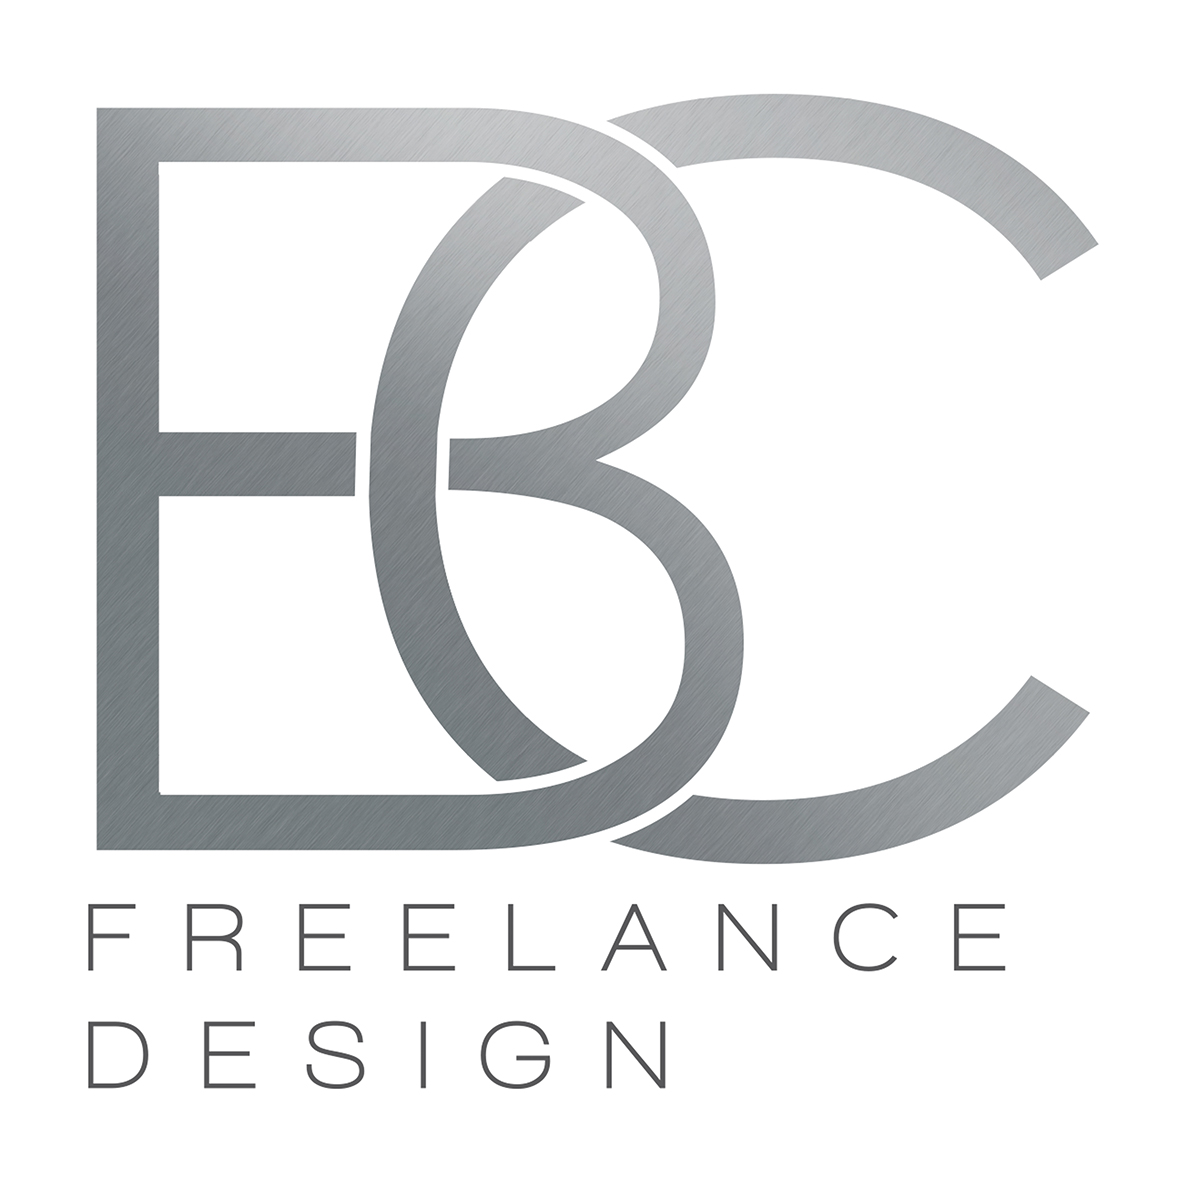 BC freelance design - Accommodation Broken Hill